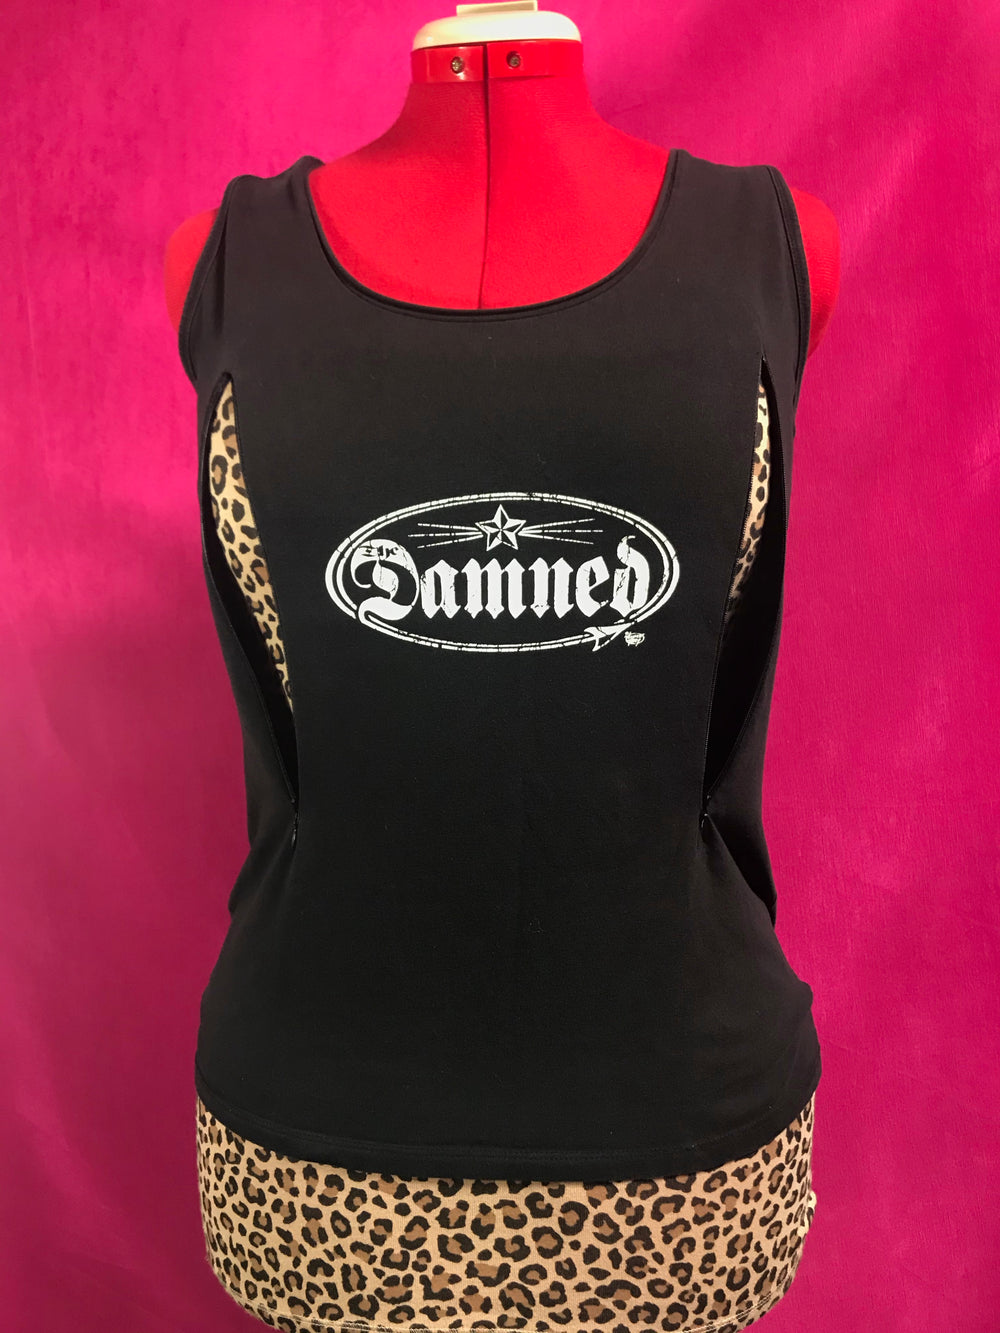 The Damned Breastfeeding Shirt (M*)